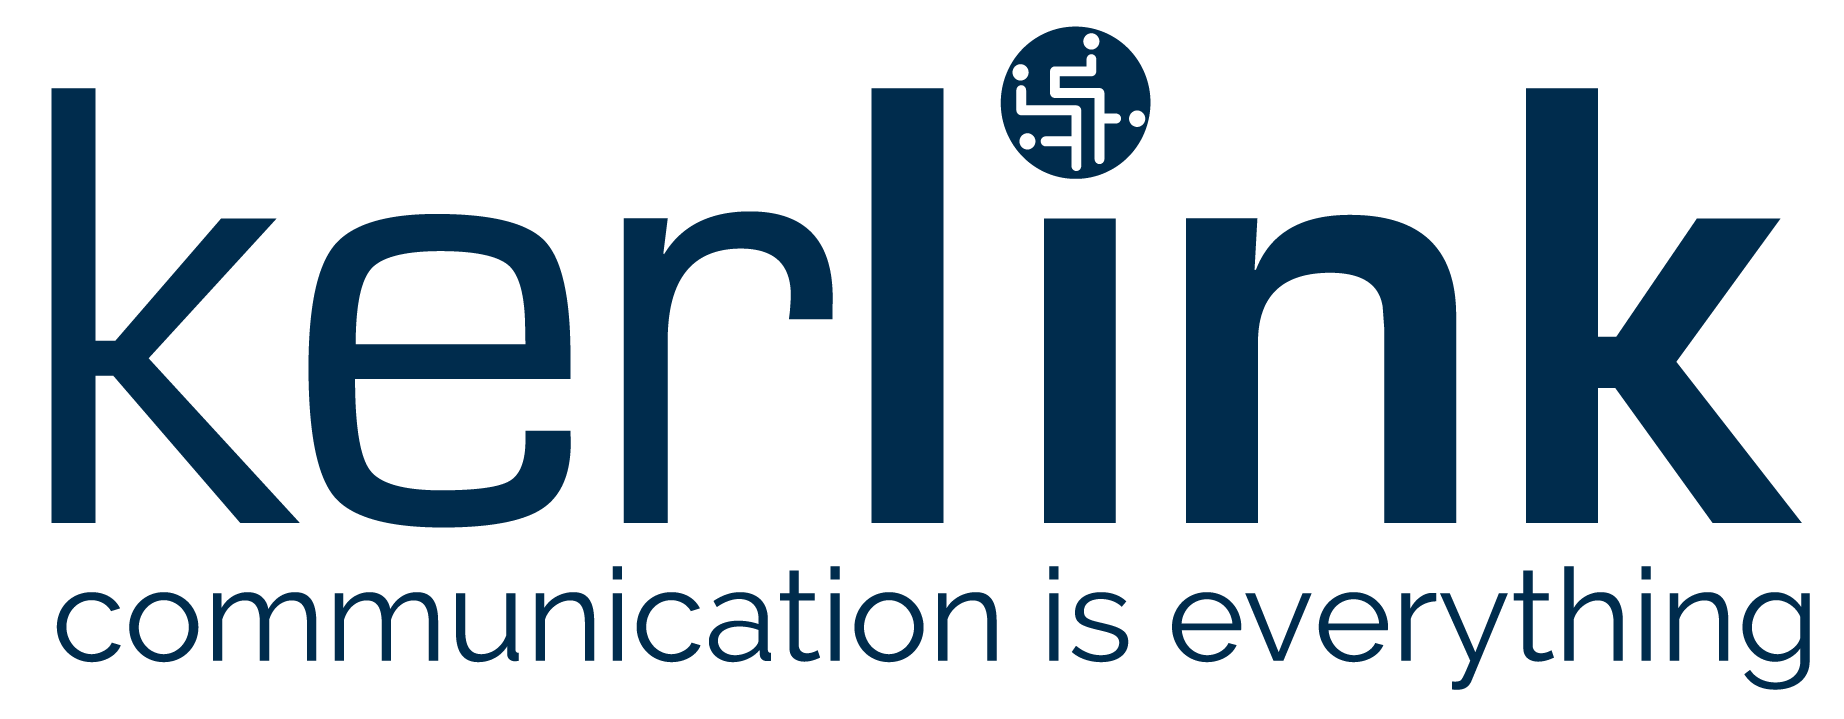 kerlink-logo